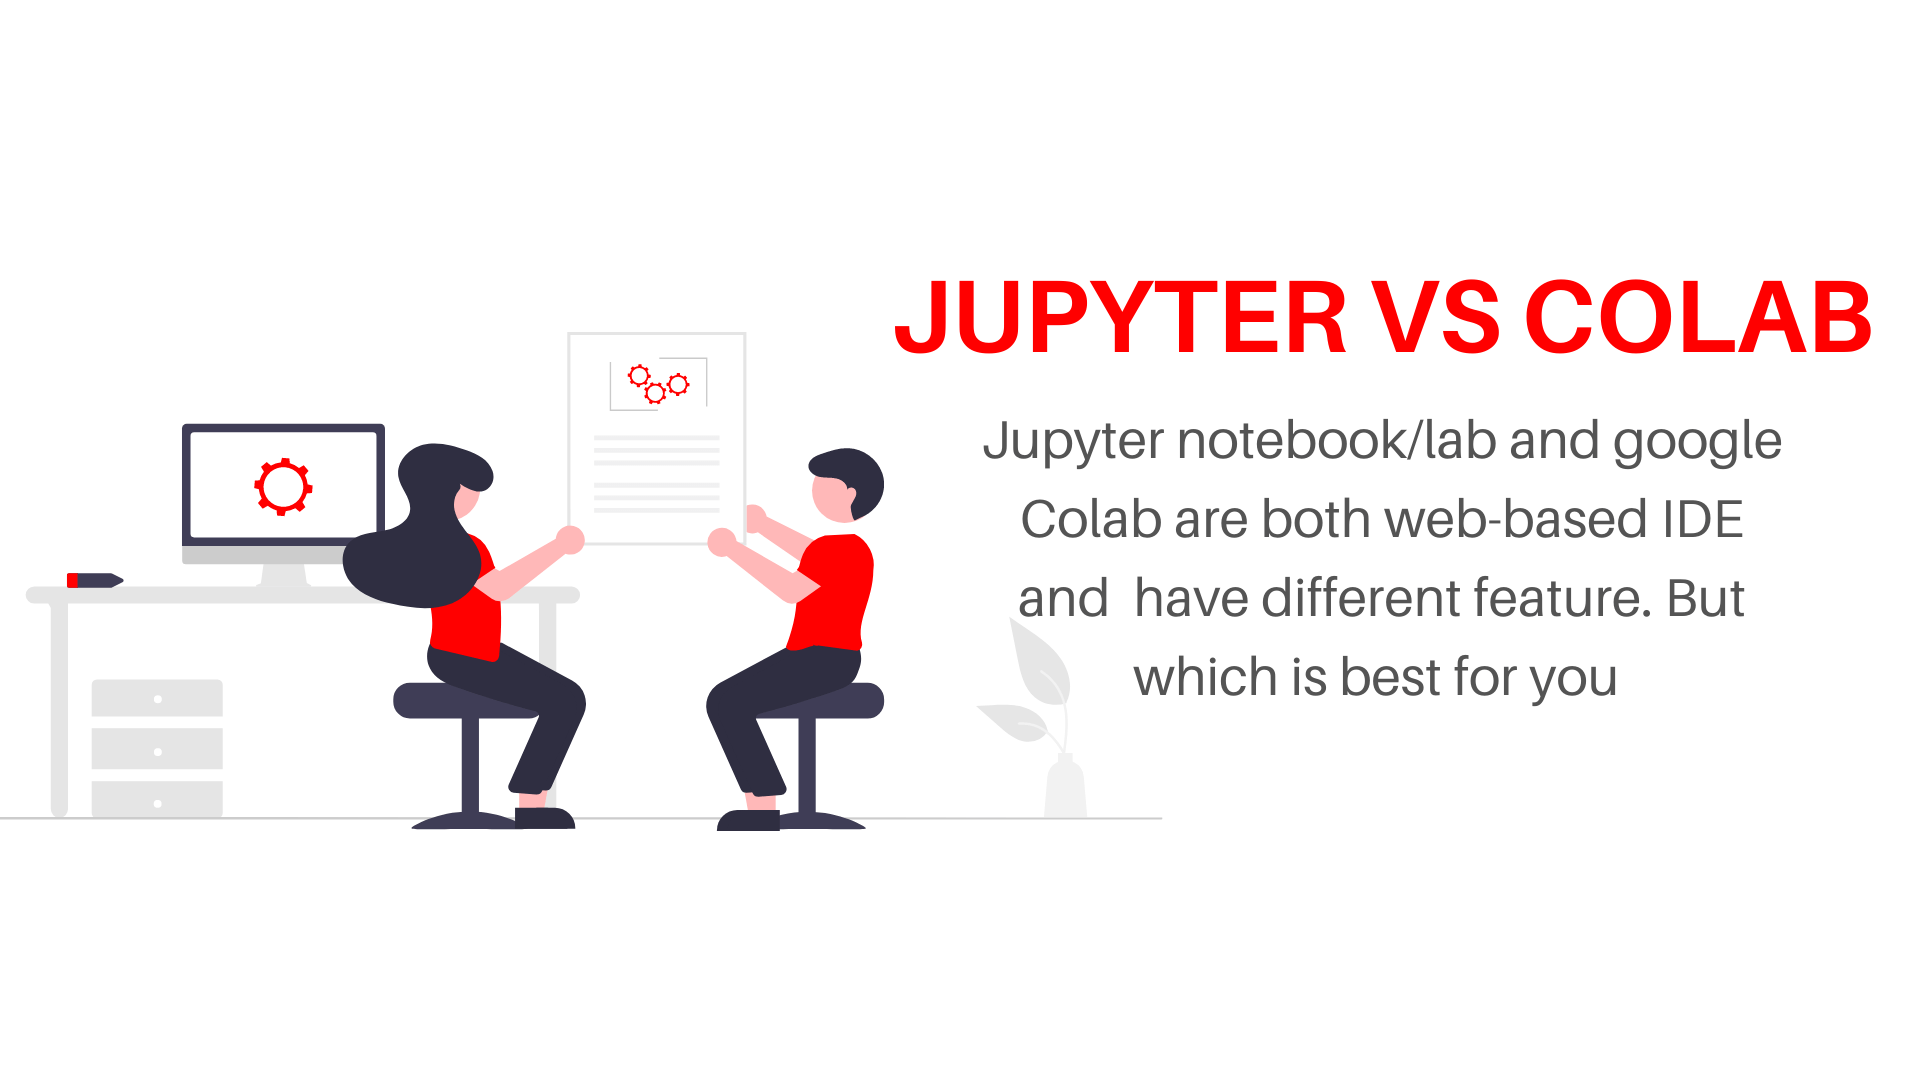 Jupyter notebook vs google colab, which is best and which one should you use in 2021